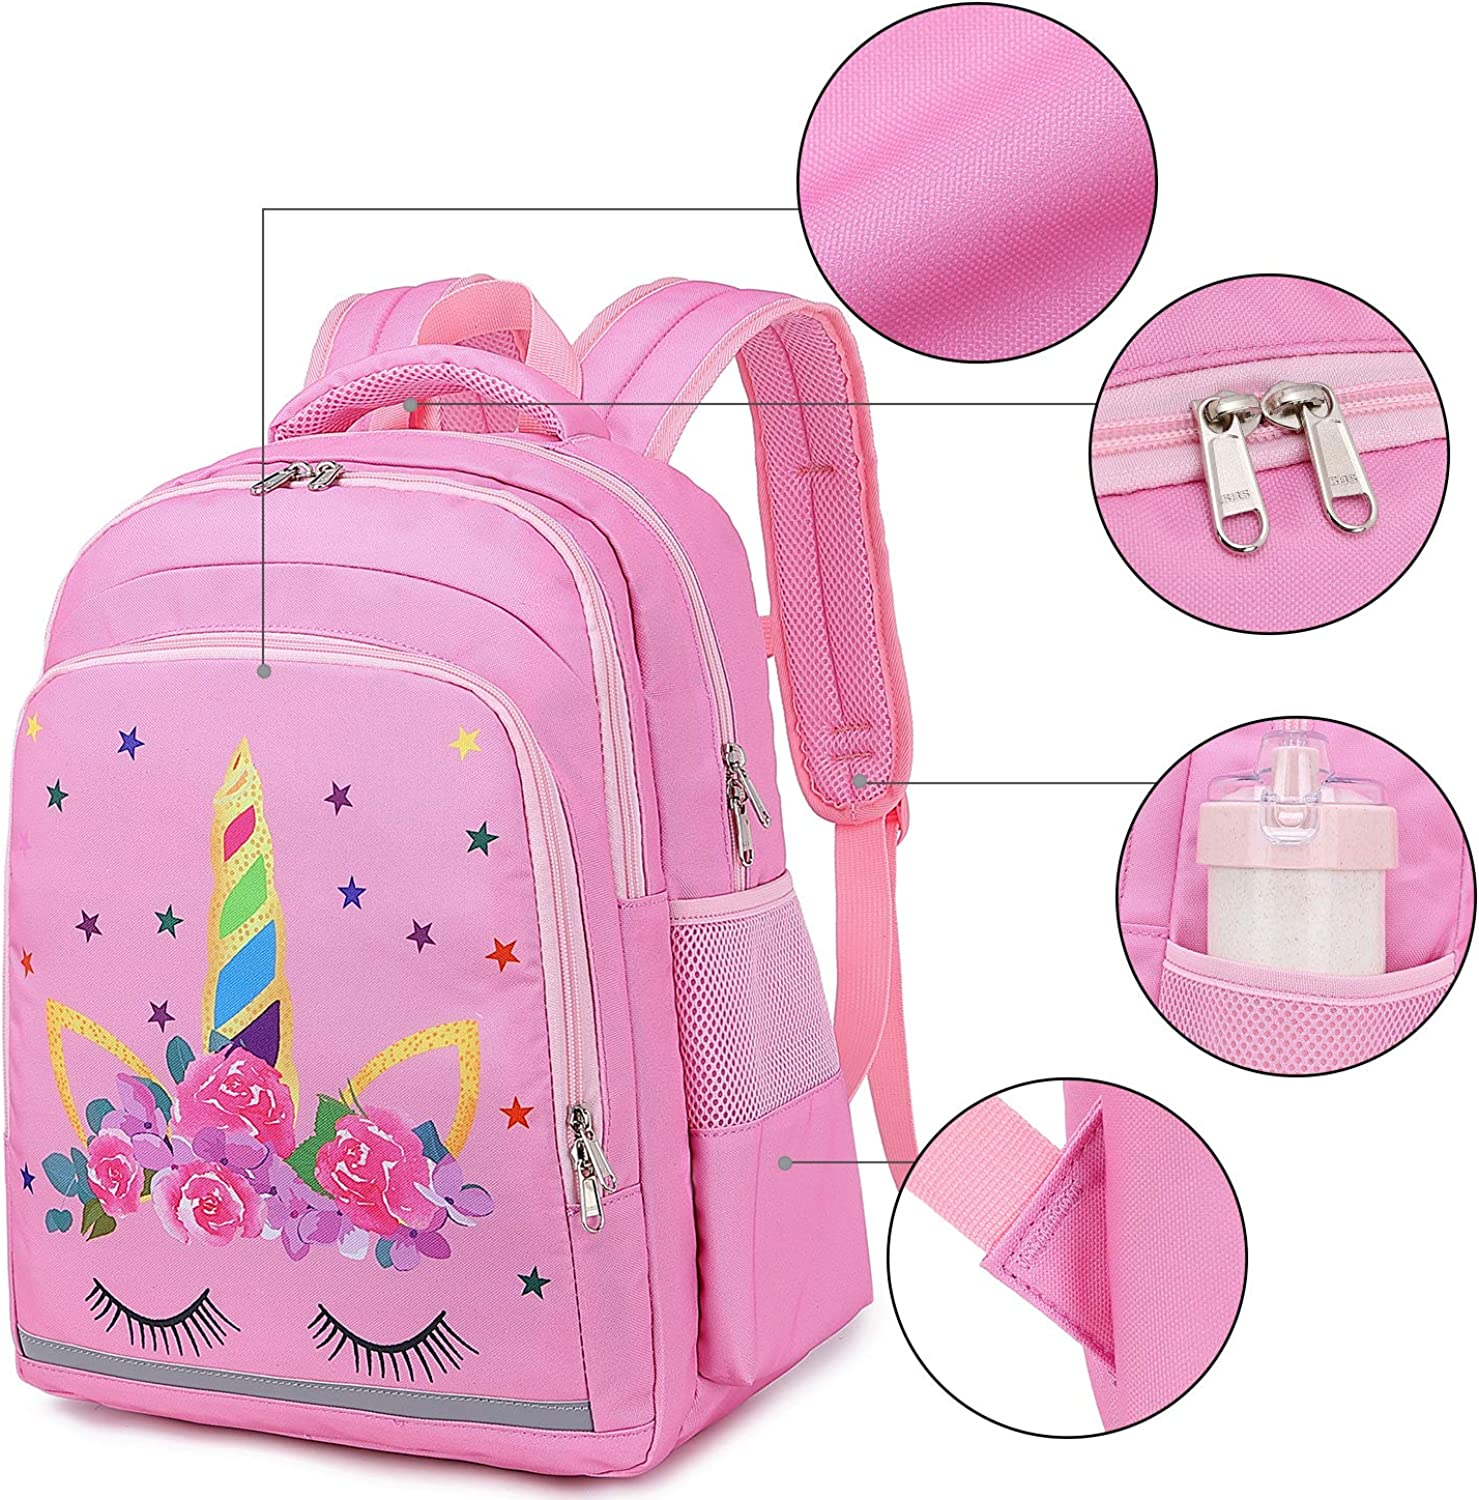 CAMTOP Girls Backpack for School Girls Backpack with Lunch Box Kids BookBag Set for Elementary Middle School Unicorn